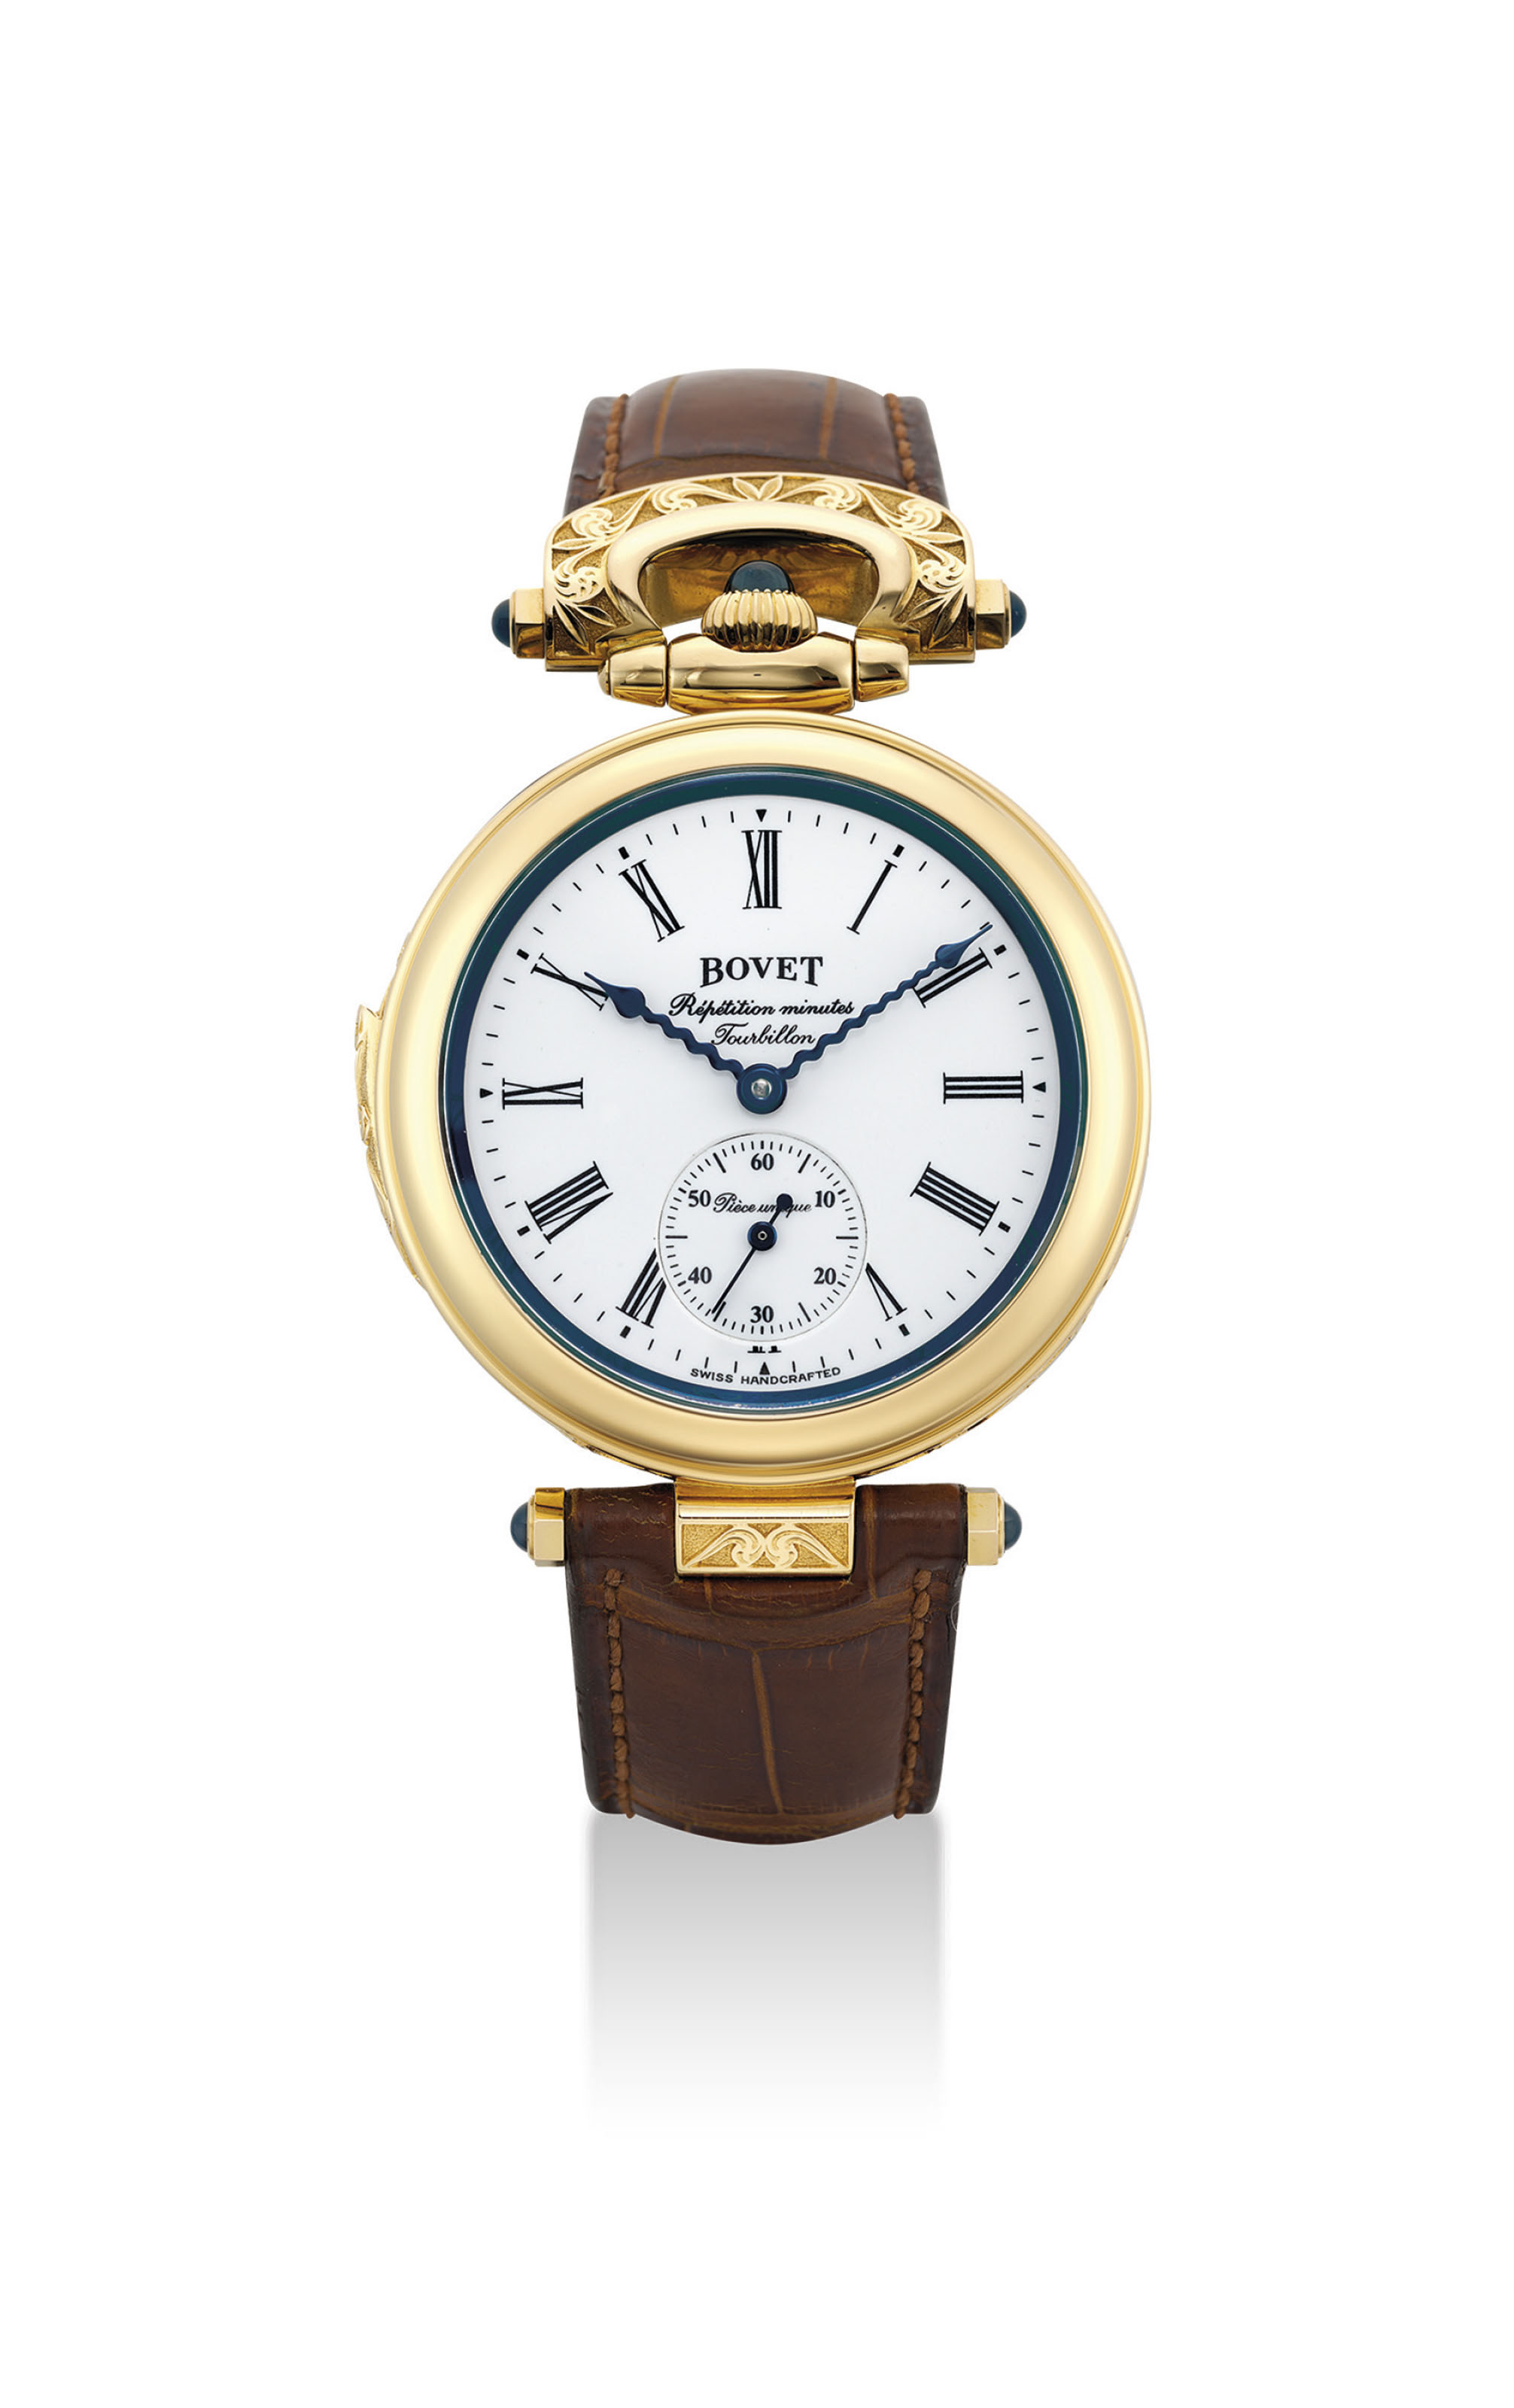 BOVET. A UNIQUE AND VERY FINE